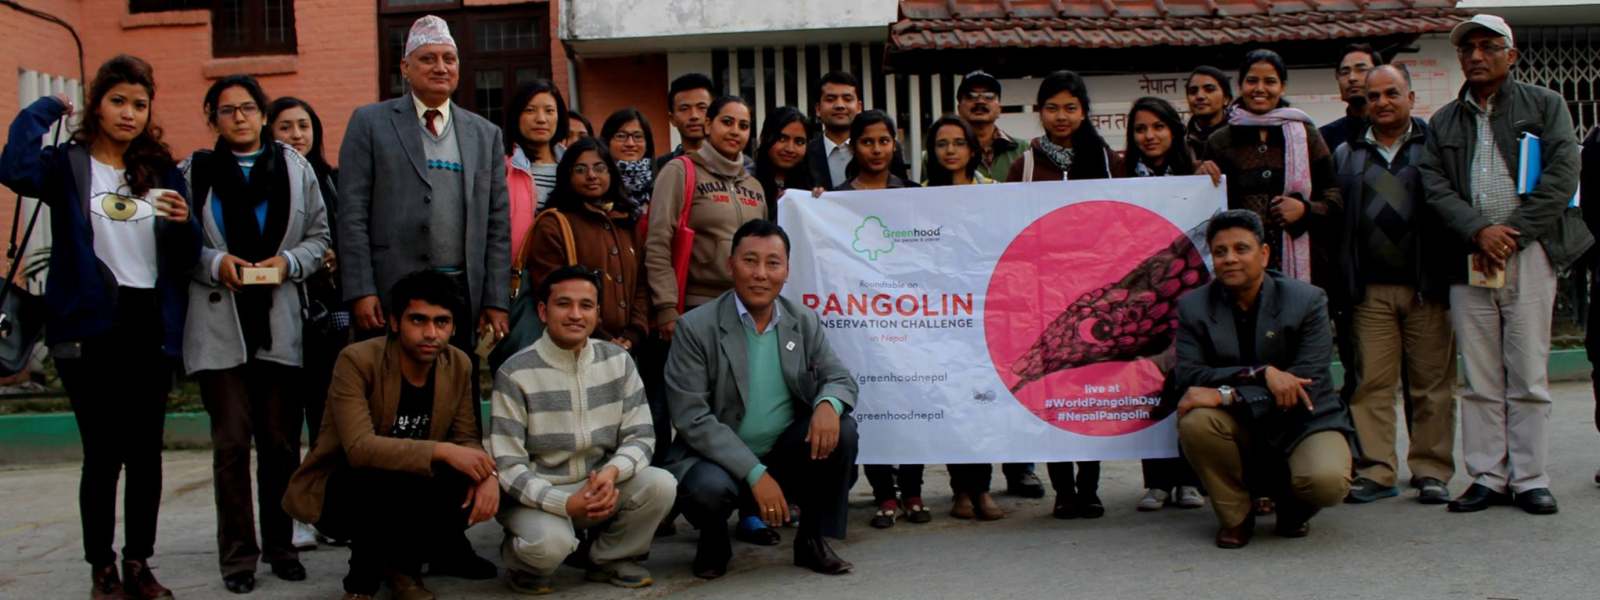 Greenhood Nepal - First Pangolin Roundtable 2015